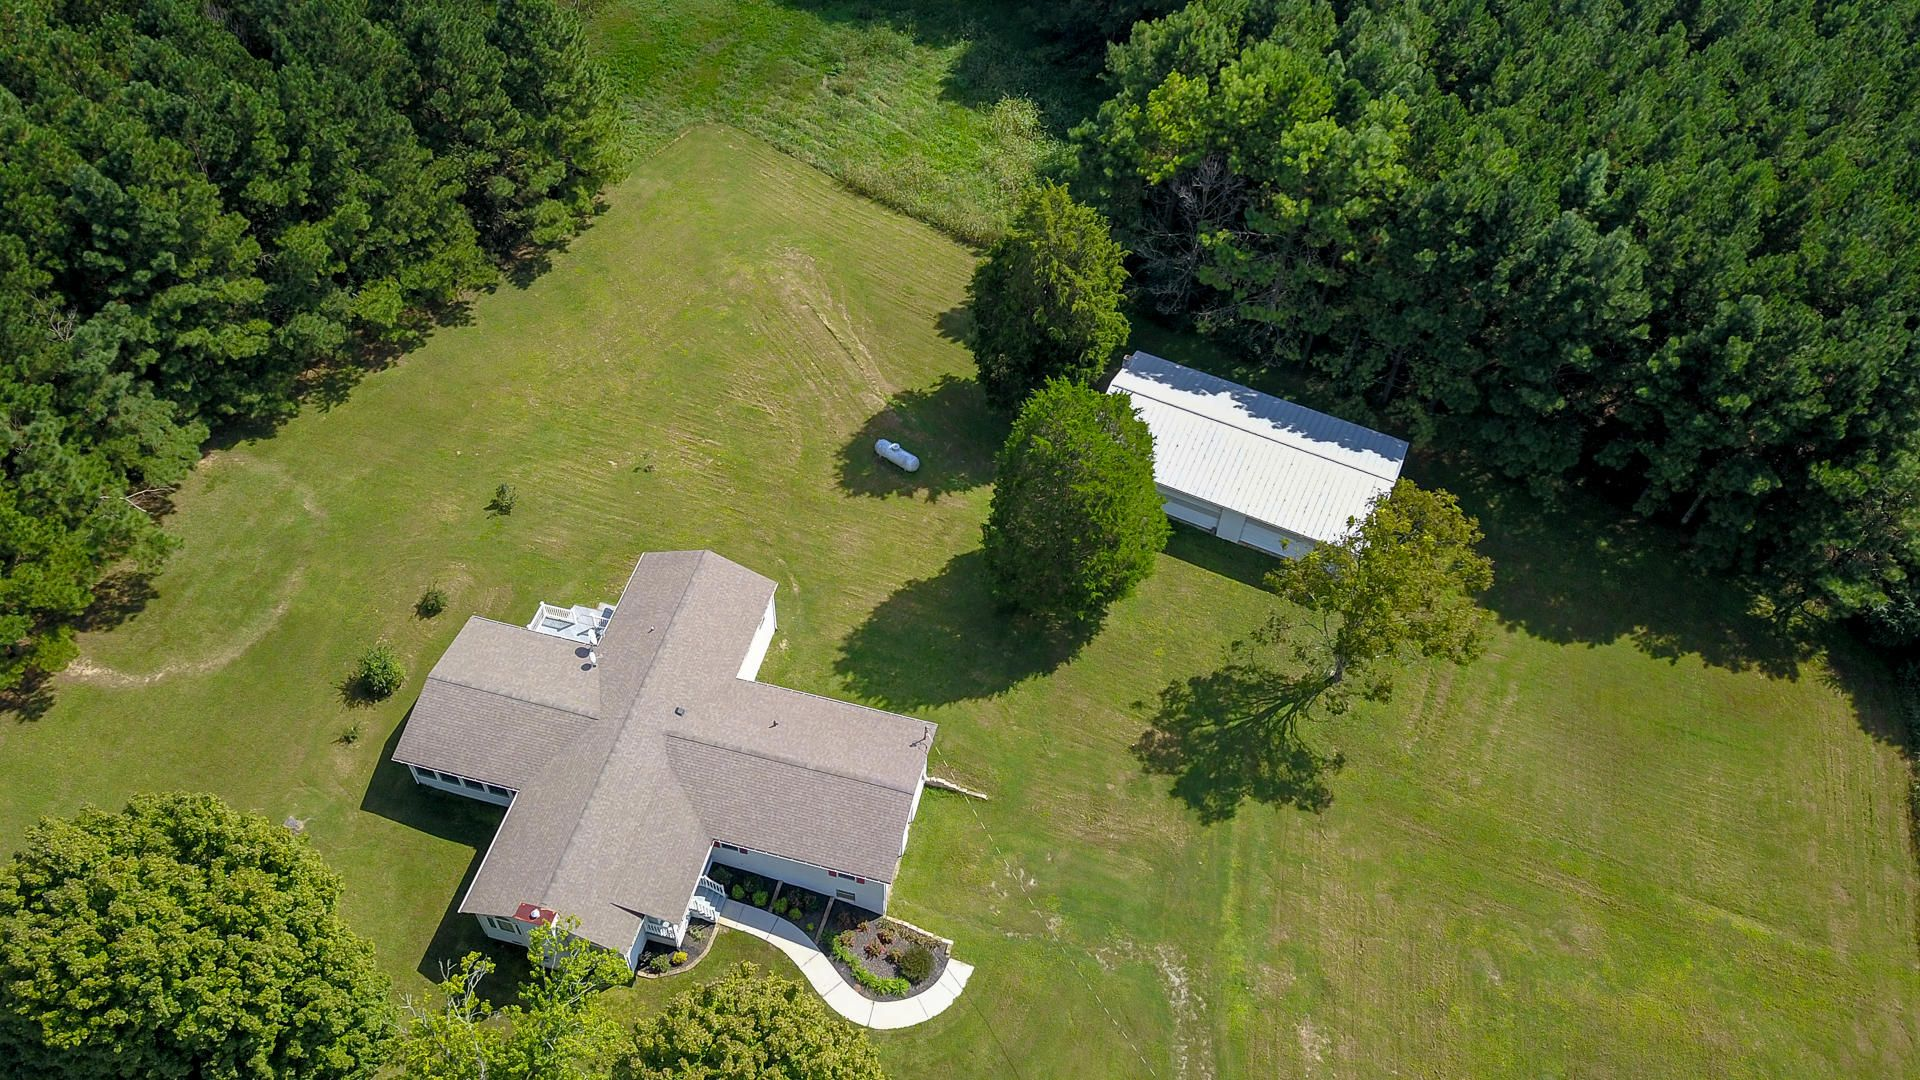 Home and detached garage from the sky